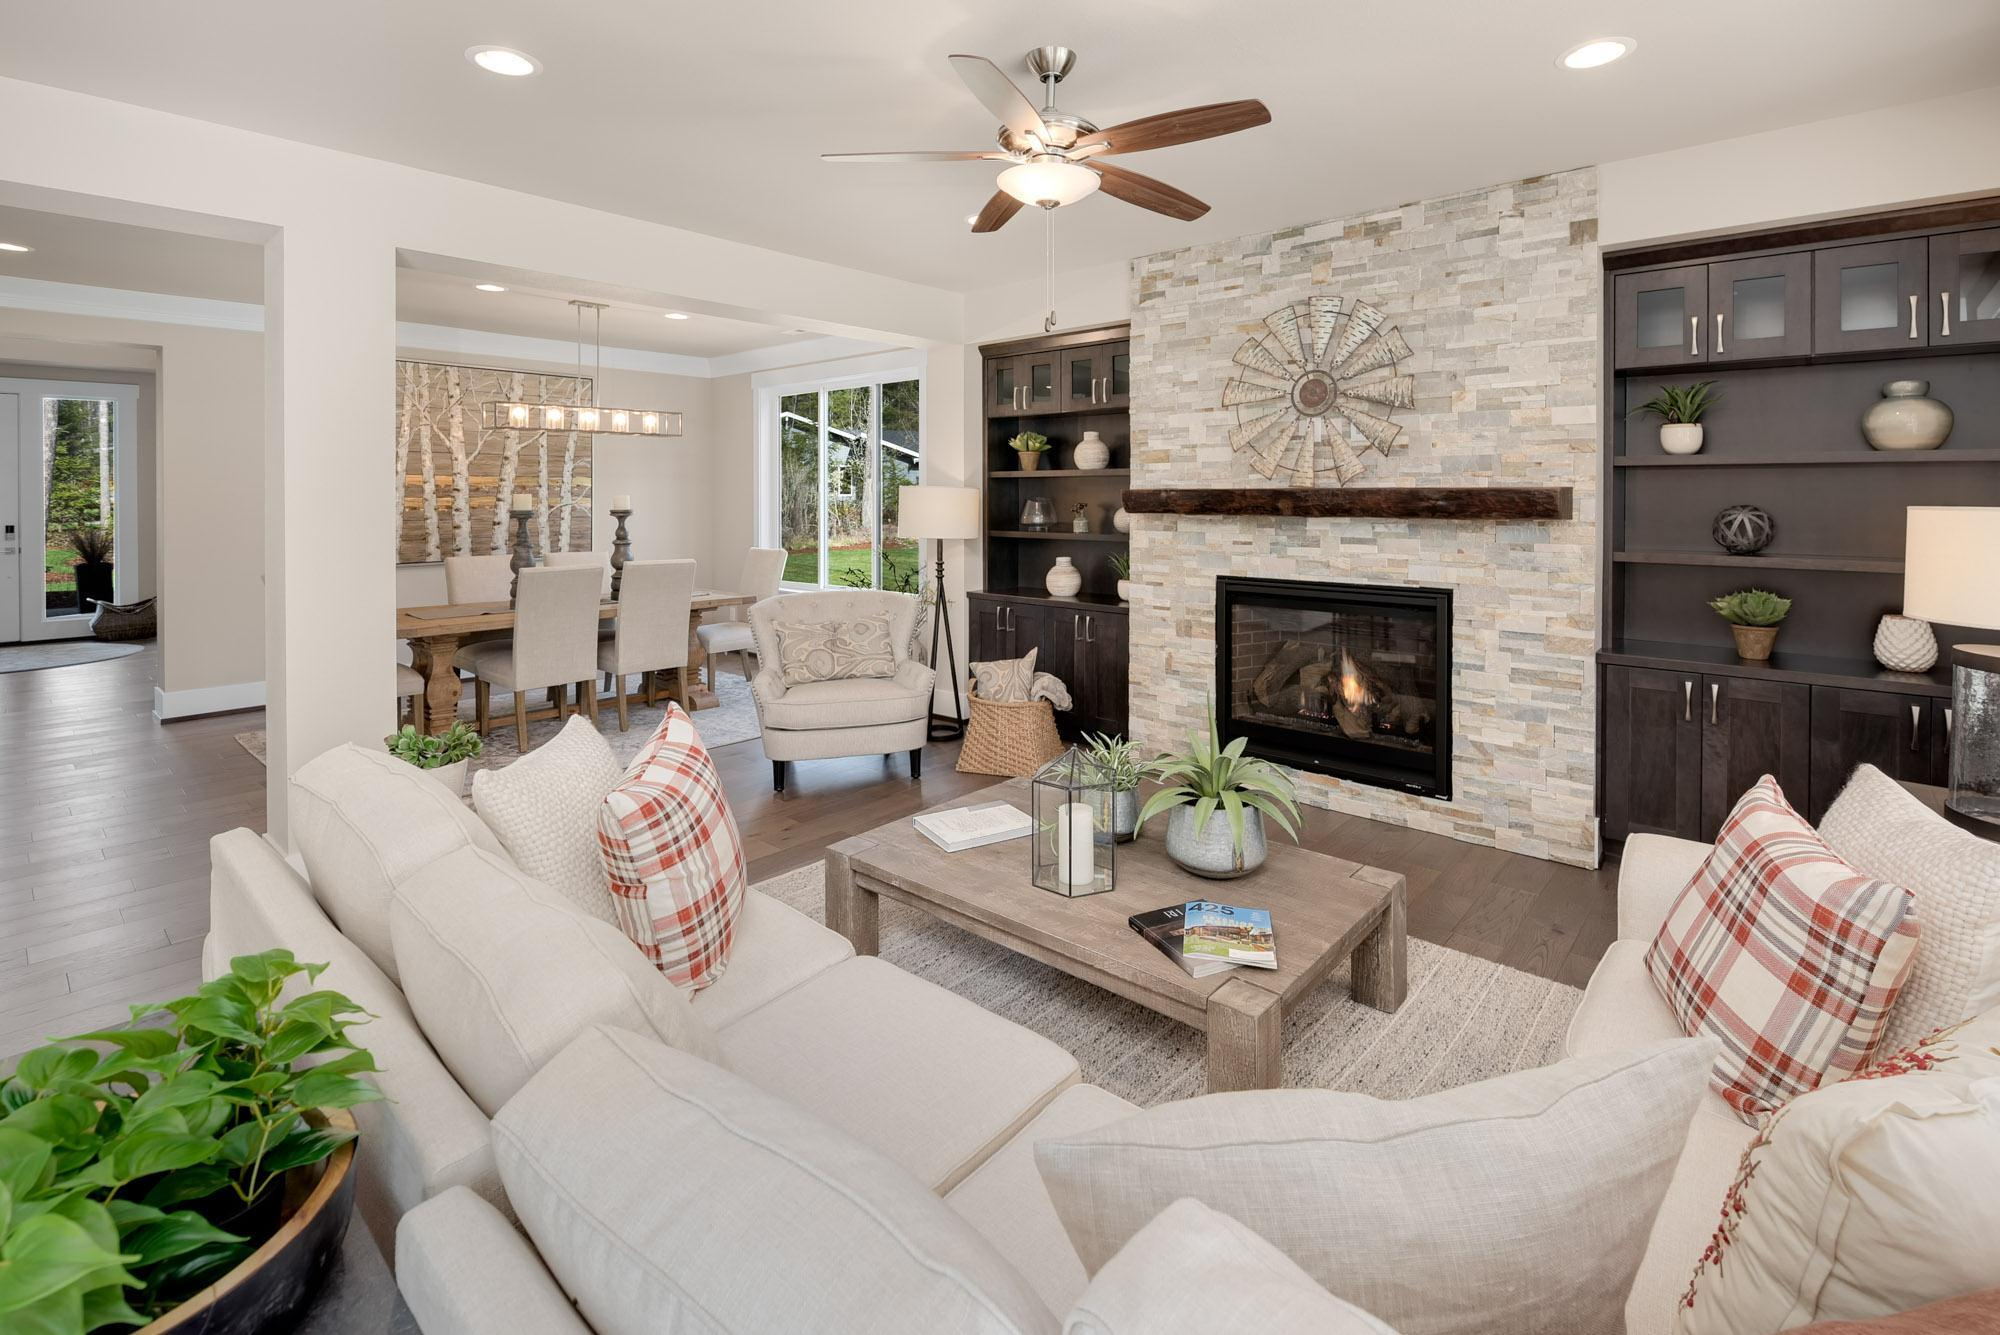 Living Area featured in the Plan 263 By Schneider Family Homes in Seattle-Bellevue, WA